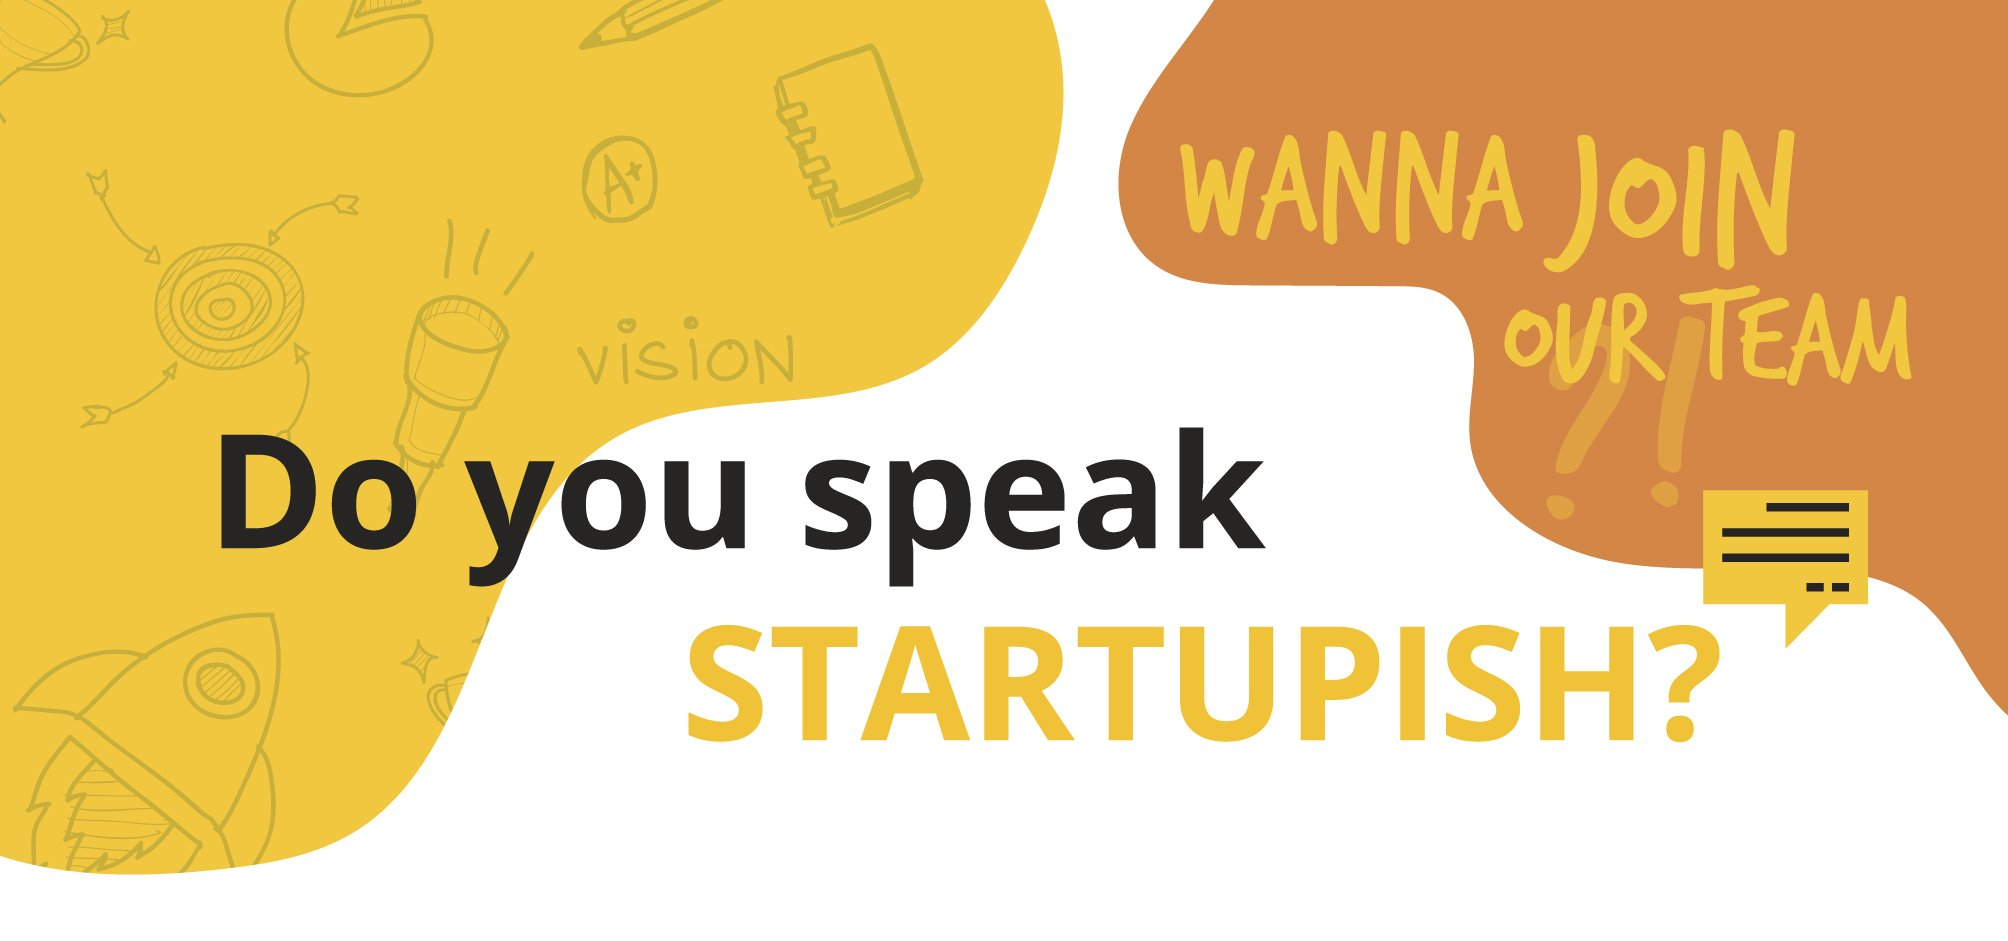 do you speak startupish